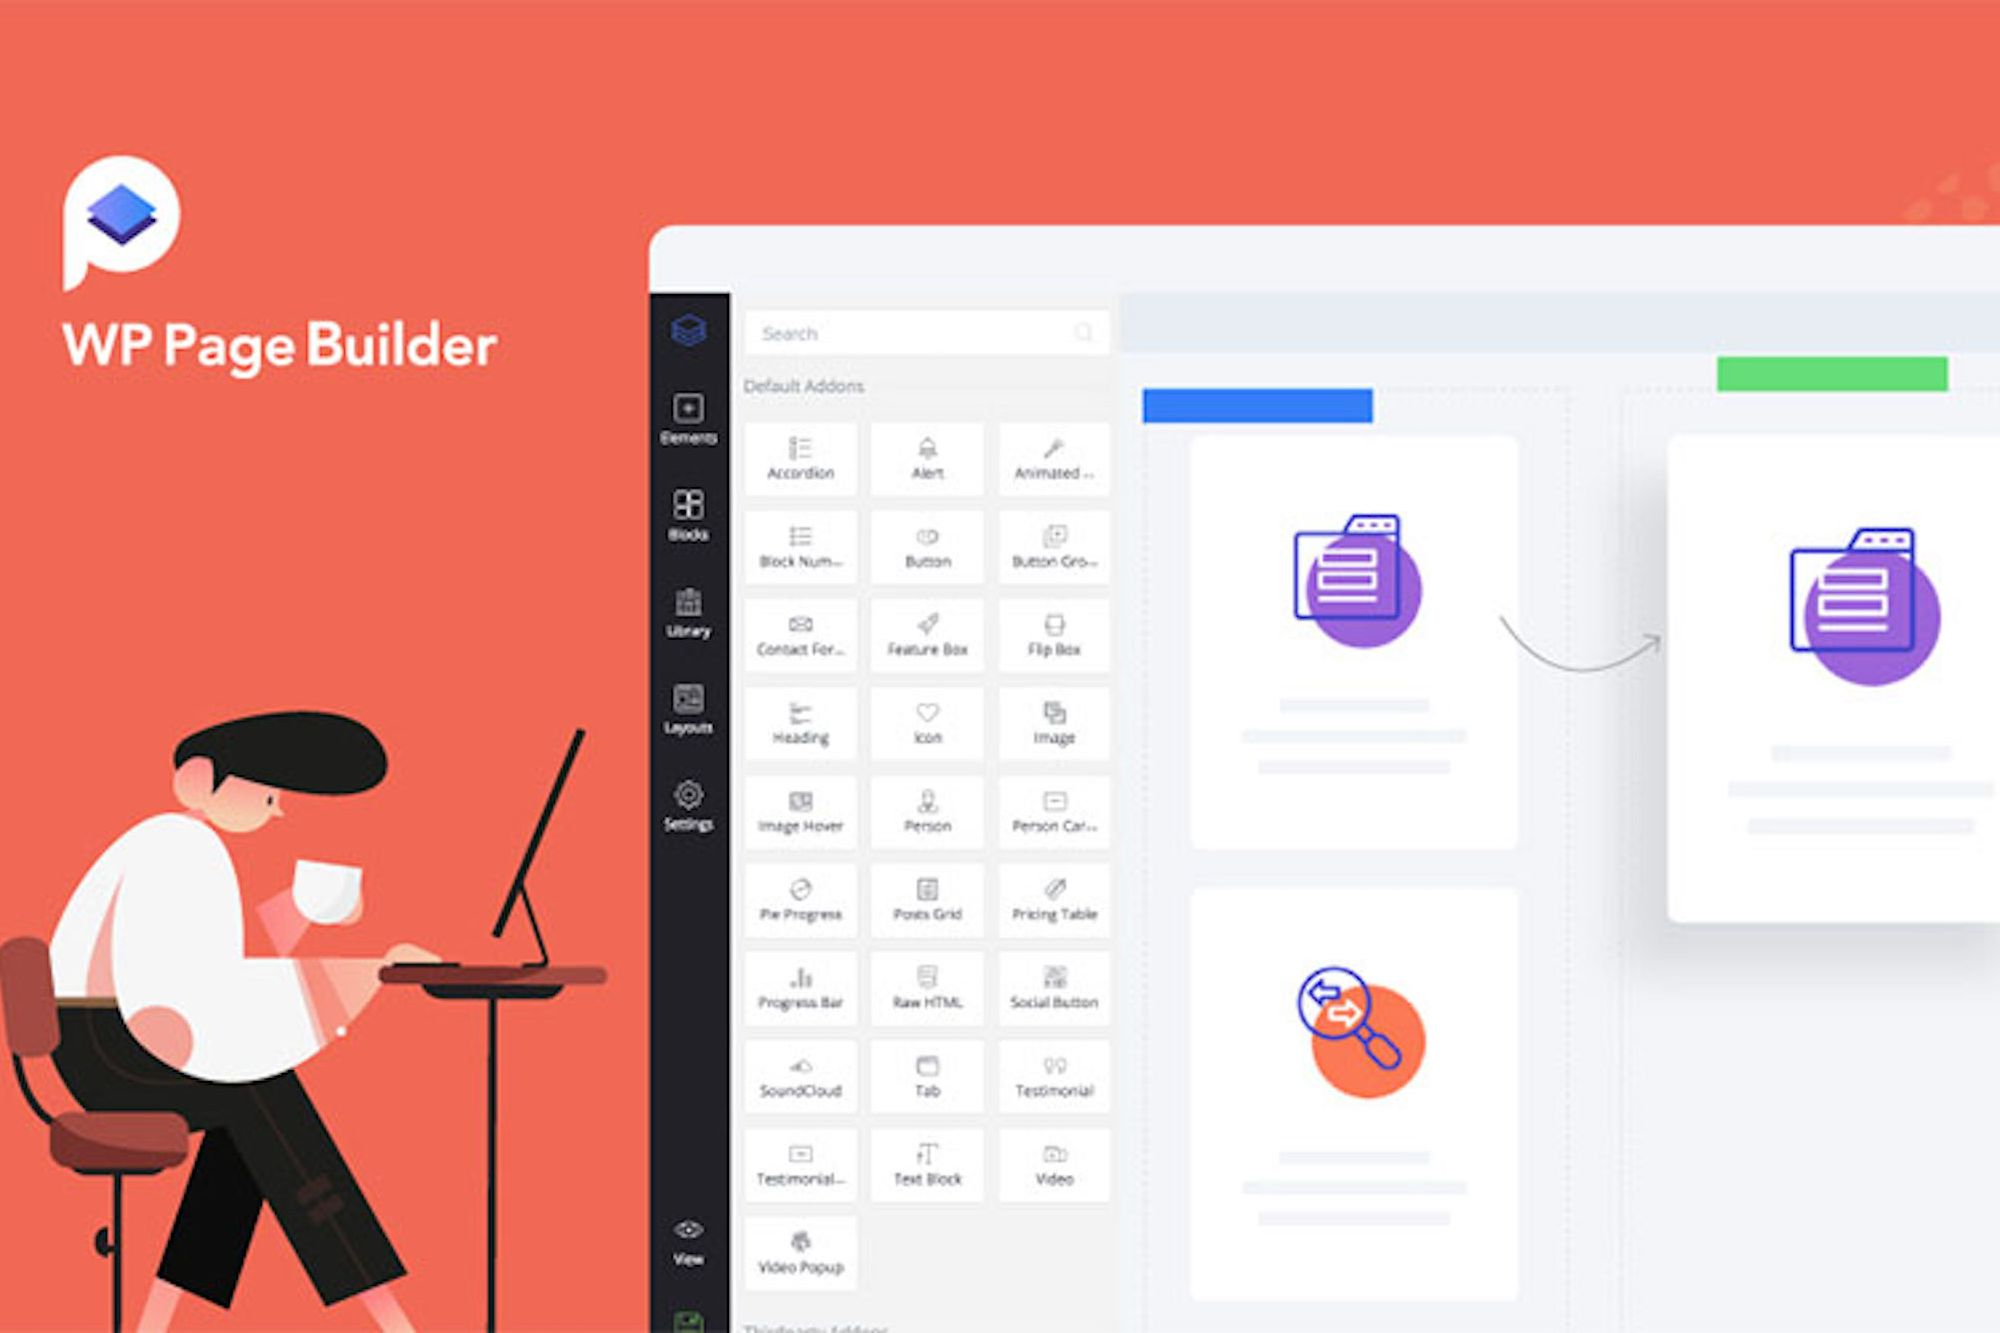 Anyone Can Build a Website With WP Page Builder